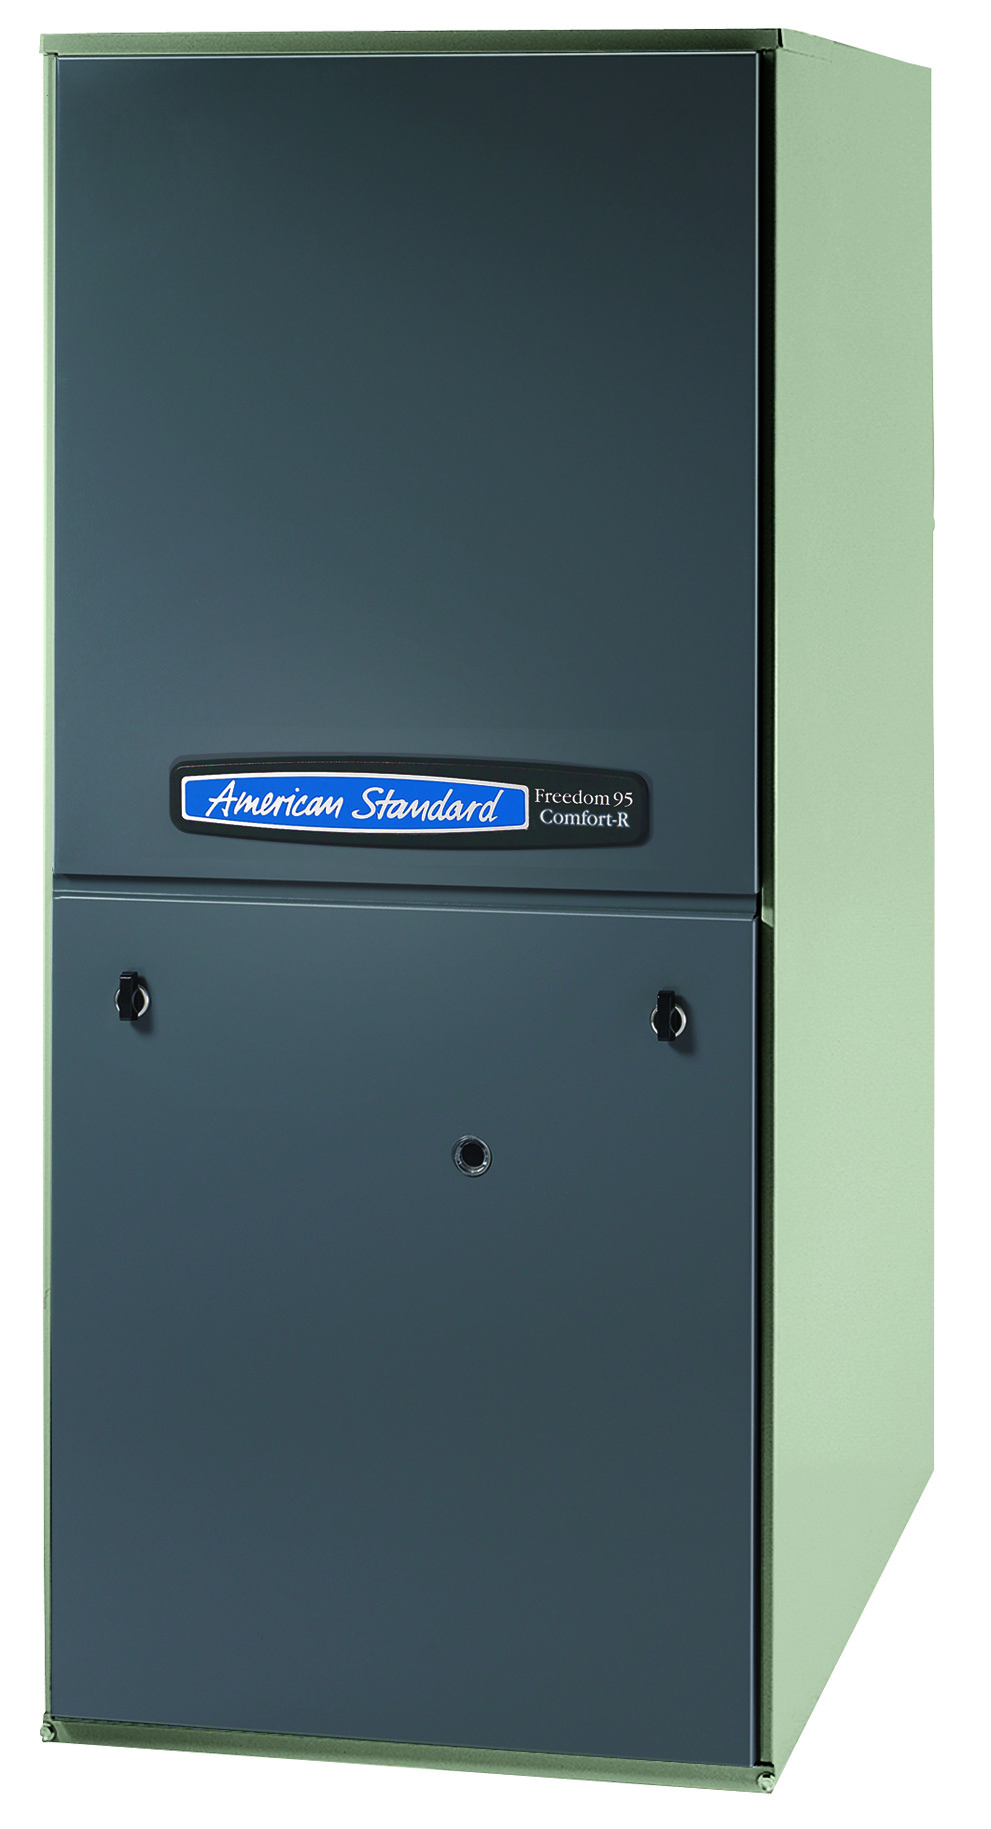 An American Standard high-efficiency furnace will save you money ...